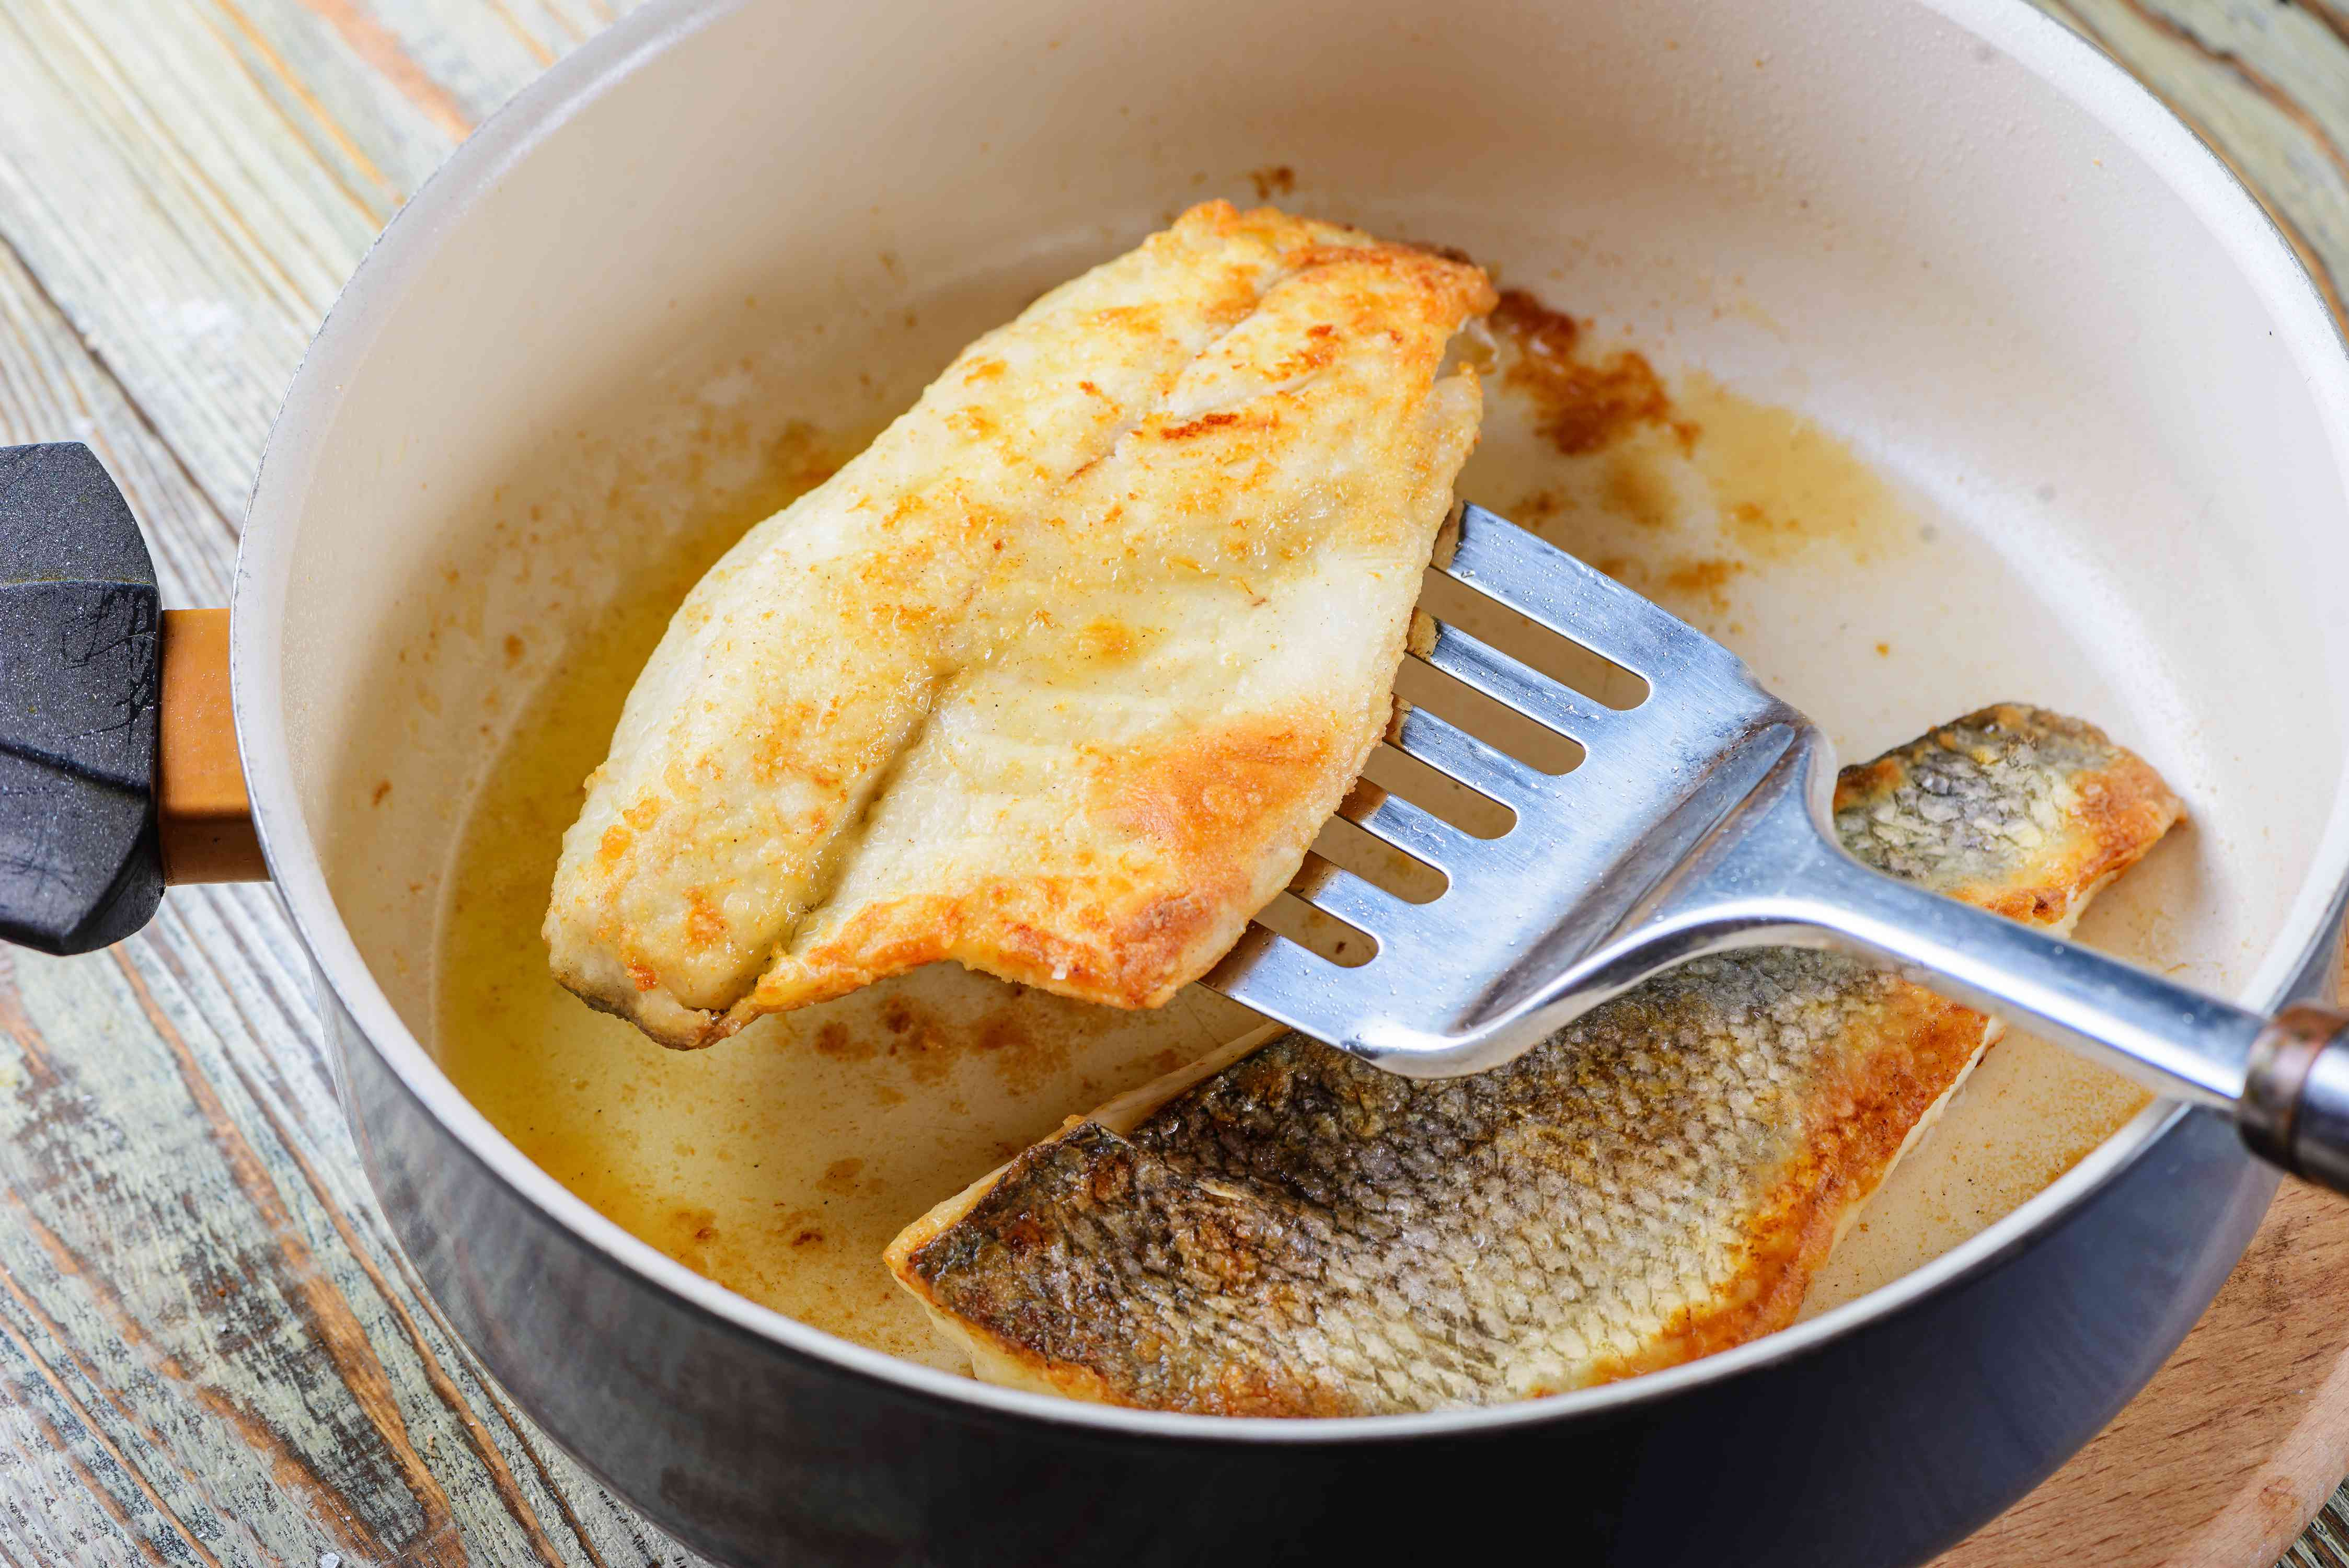 Place fillets in pan